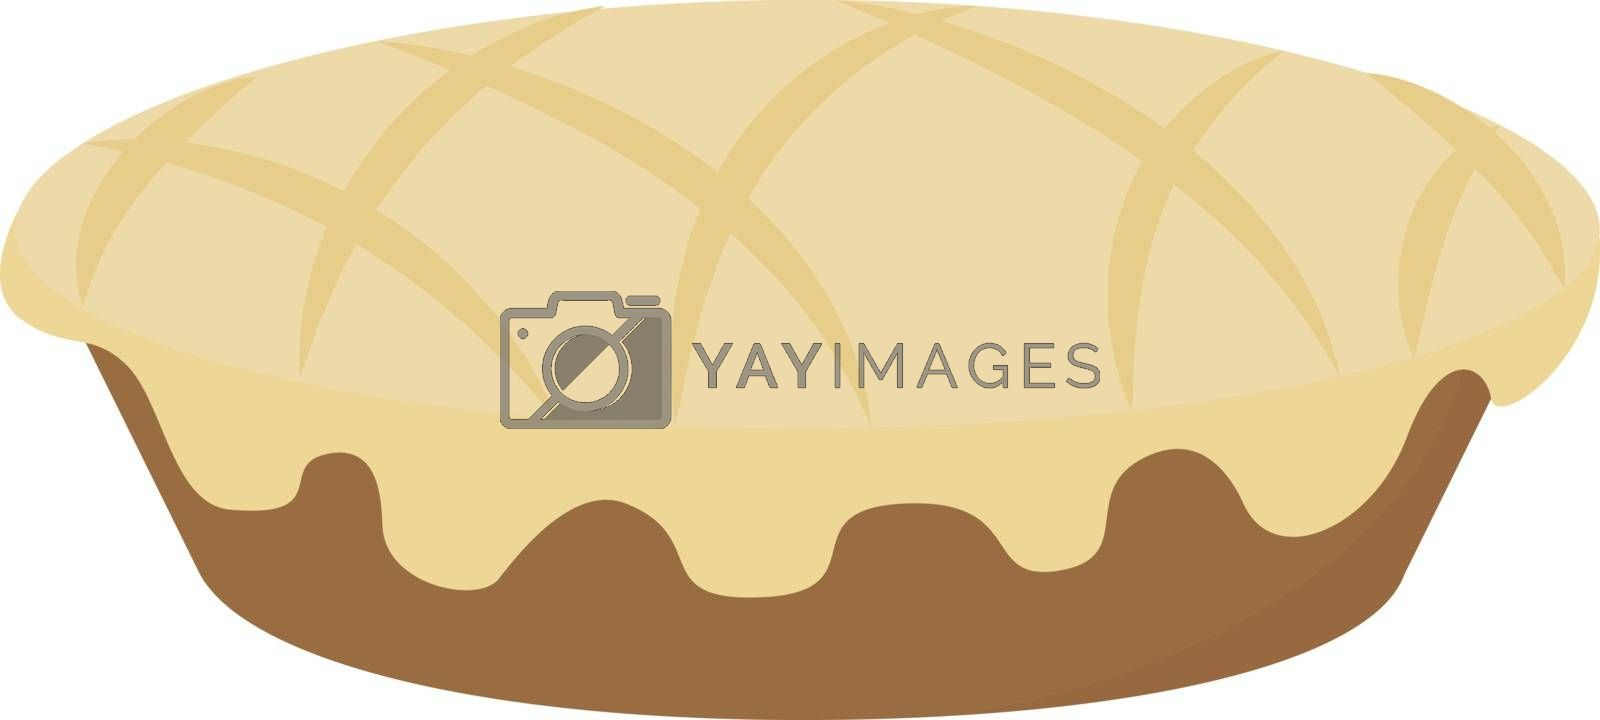 Apple pie, illustration, vector on white background.